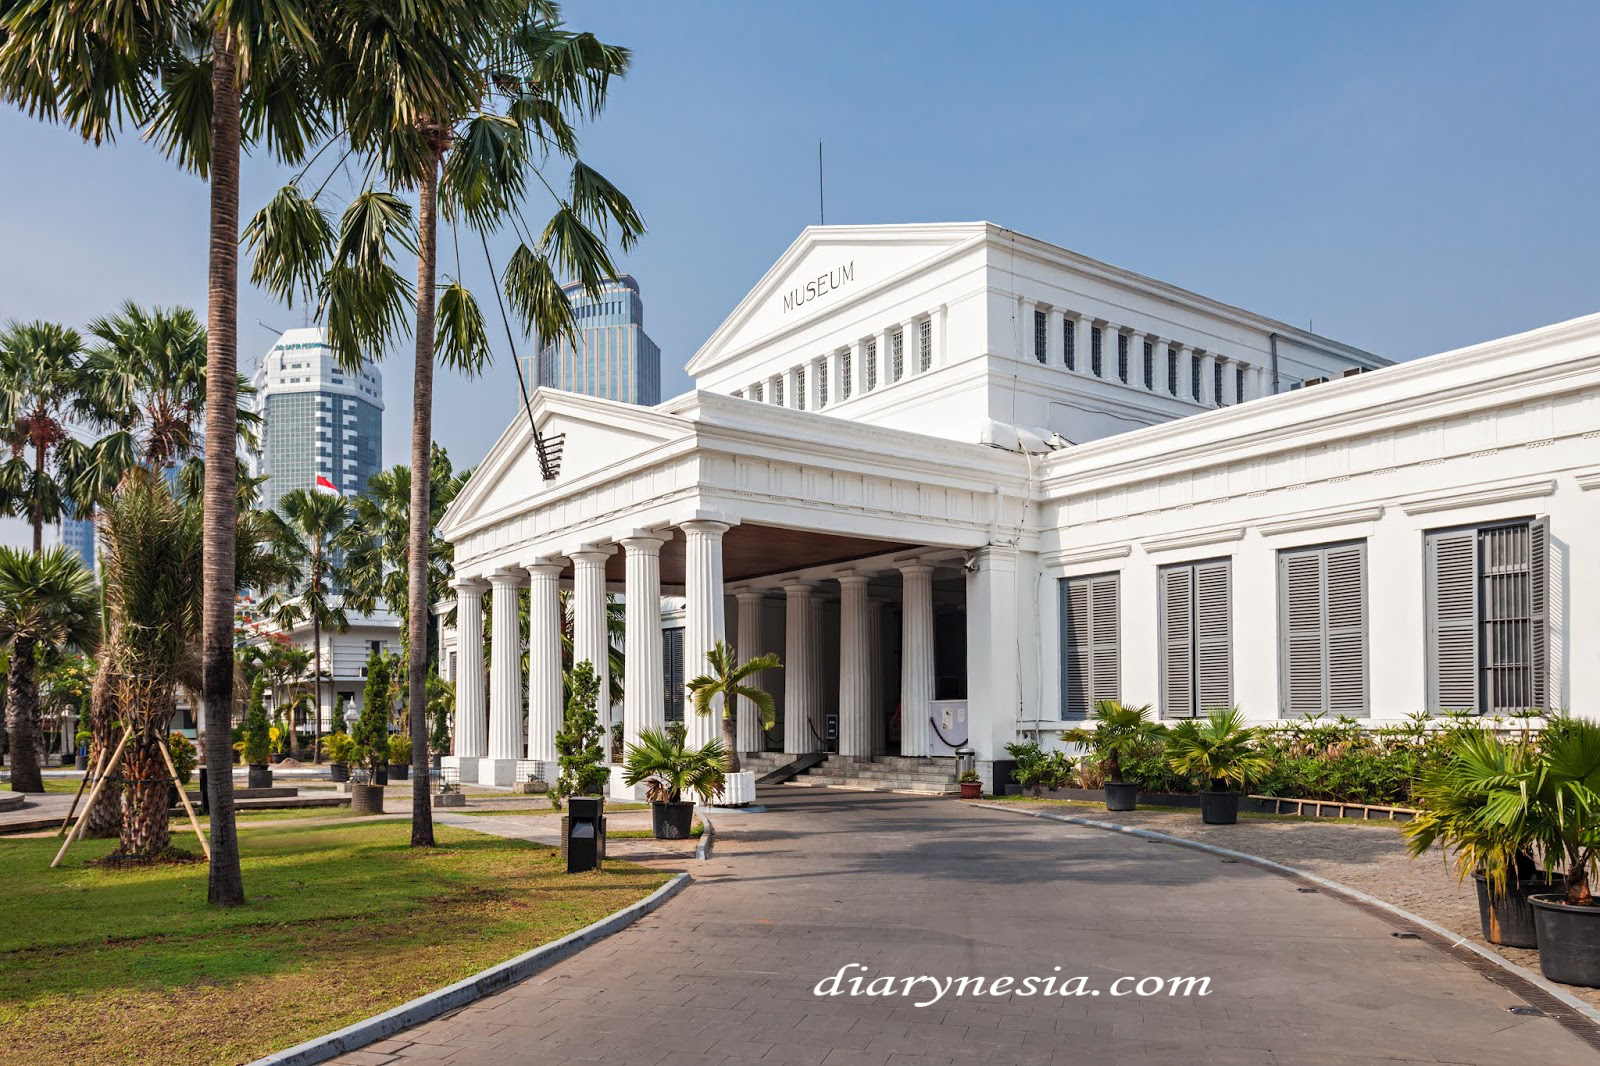 Best museums to visit in indonesia, best museum you will want to visit in indonesia, most famous museum in indonesia, diarynesia